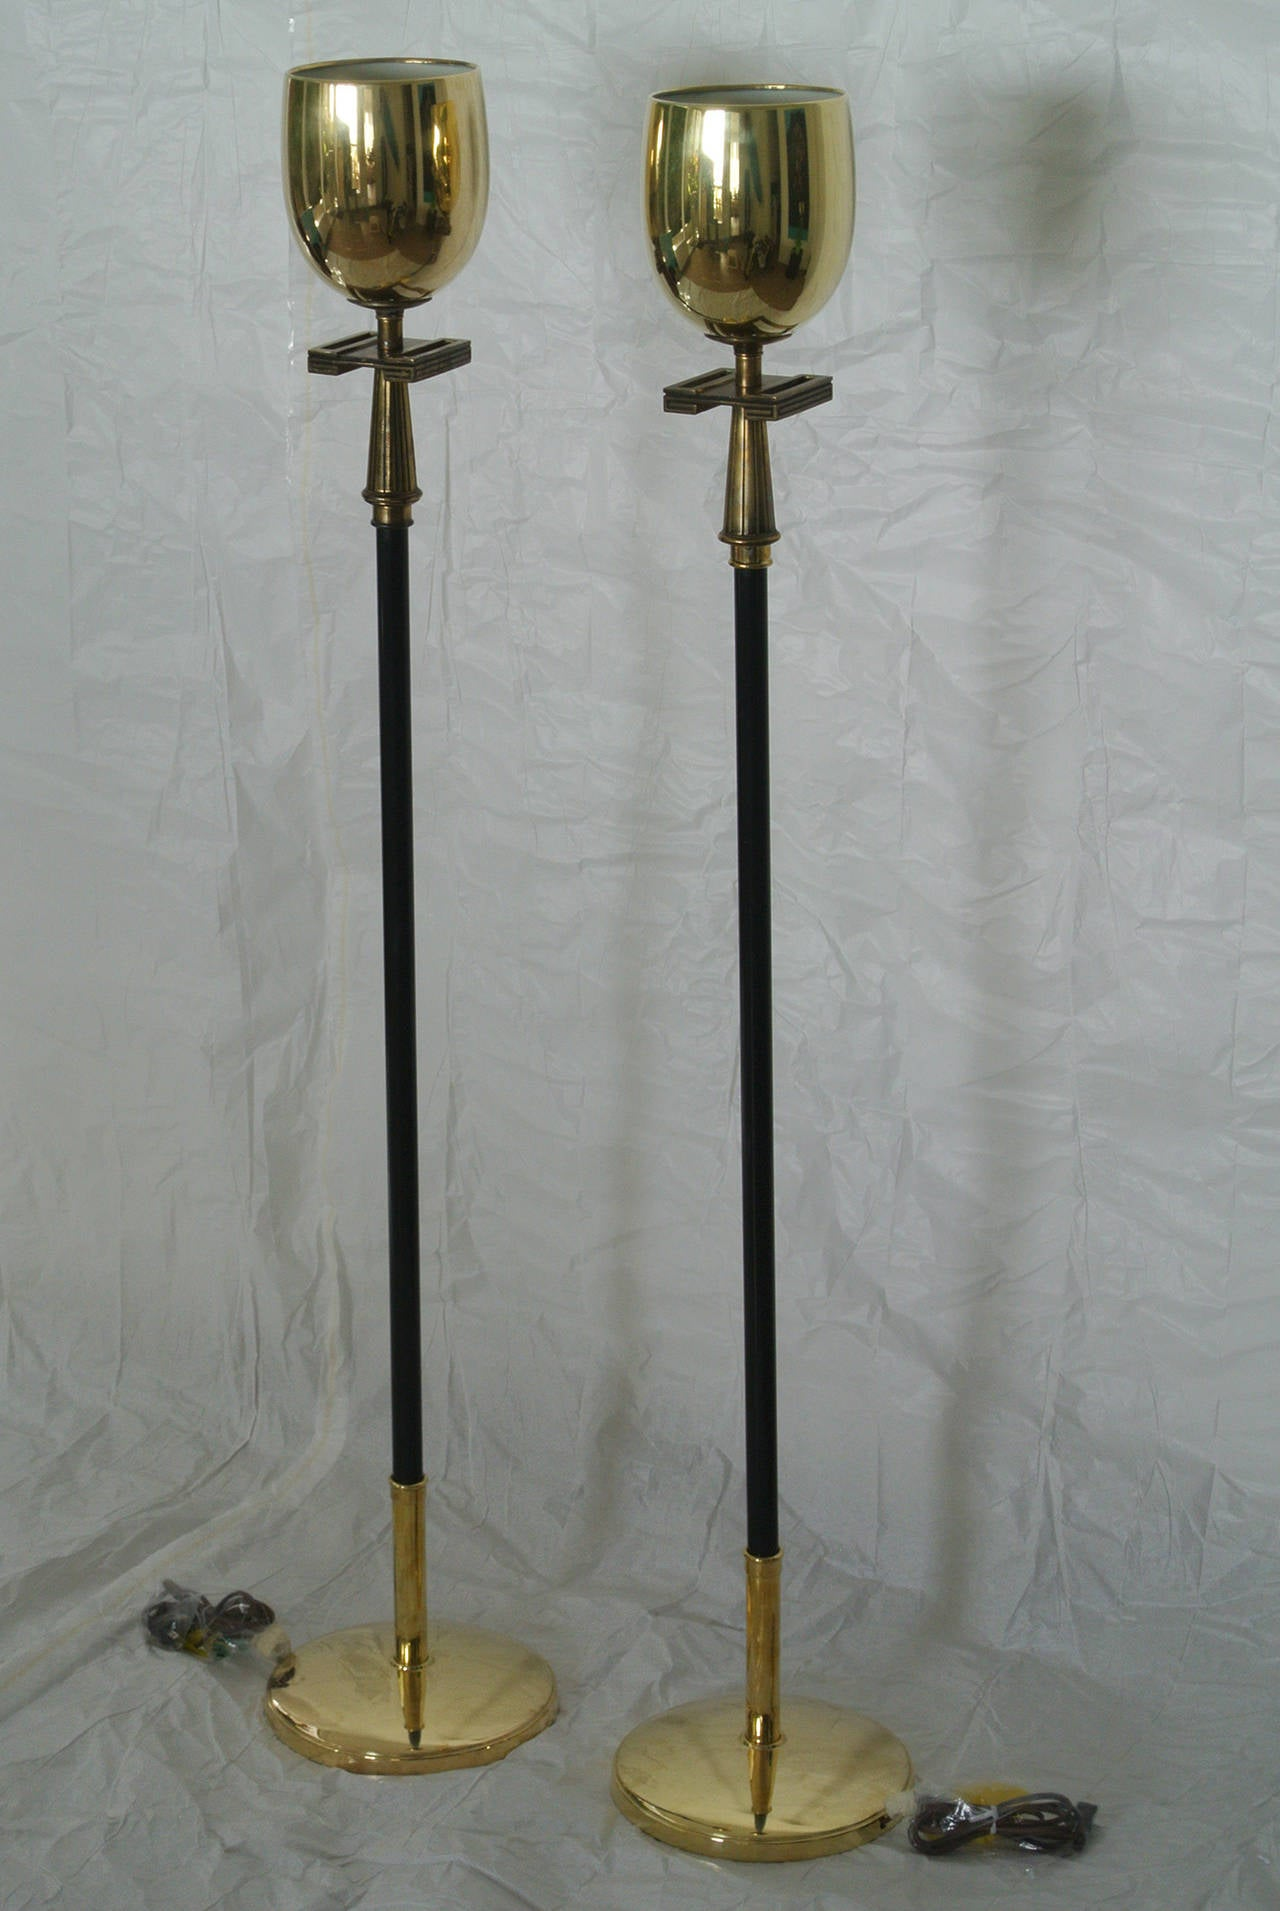 Stiffel pair of brass torchere floor lamps with greek key design stiffel matched pair of professionally restored 1940s brass floor lamps the lamps are in excellent mozeypictures Images